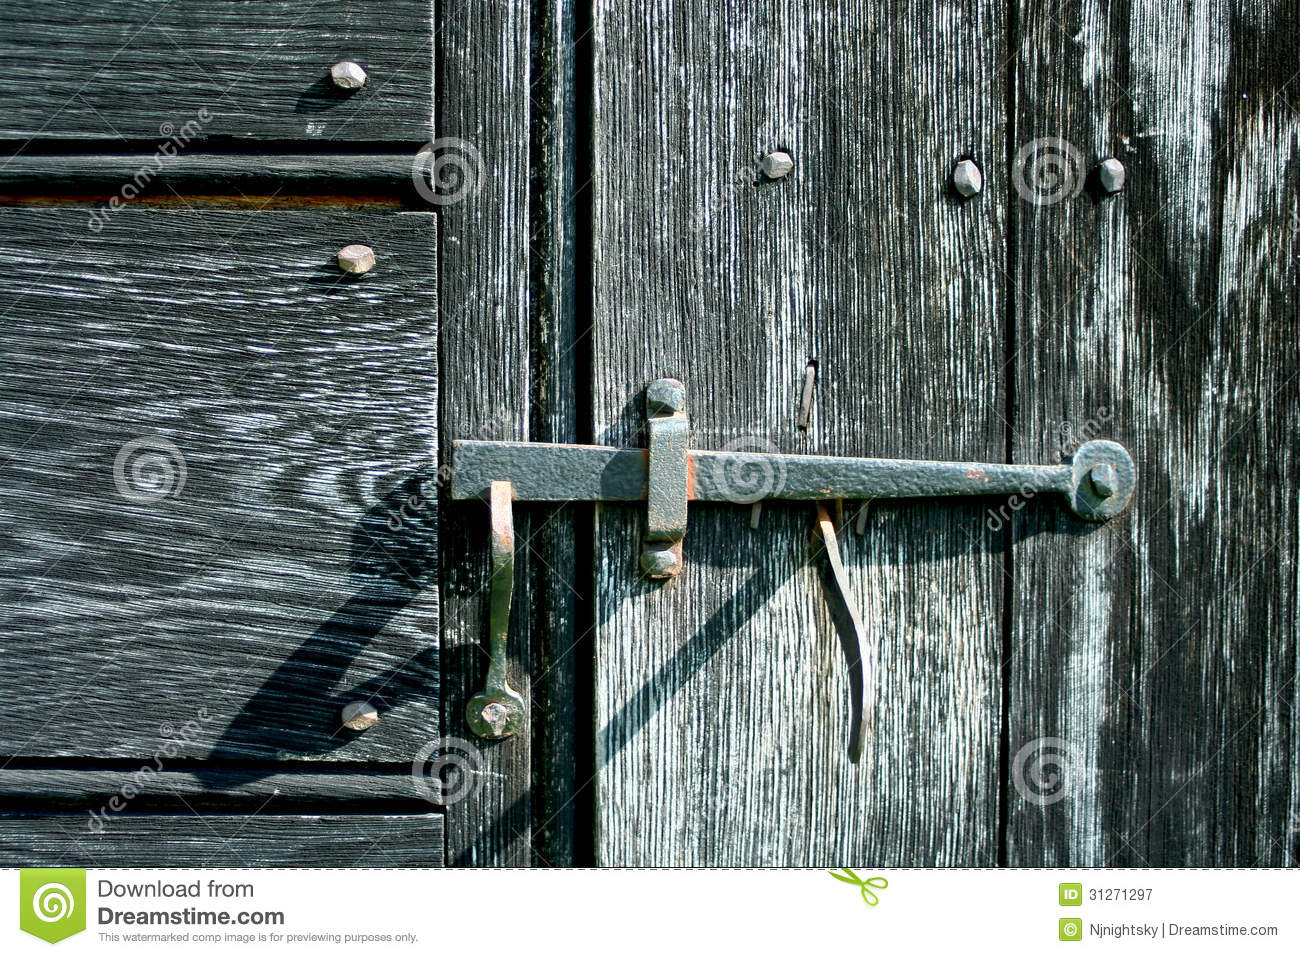 Le Meilleur Old Iron Door Latch Royalty Free Stock Photography Image Ce Mois Ci